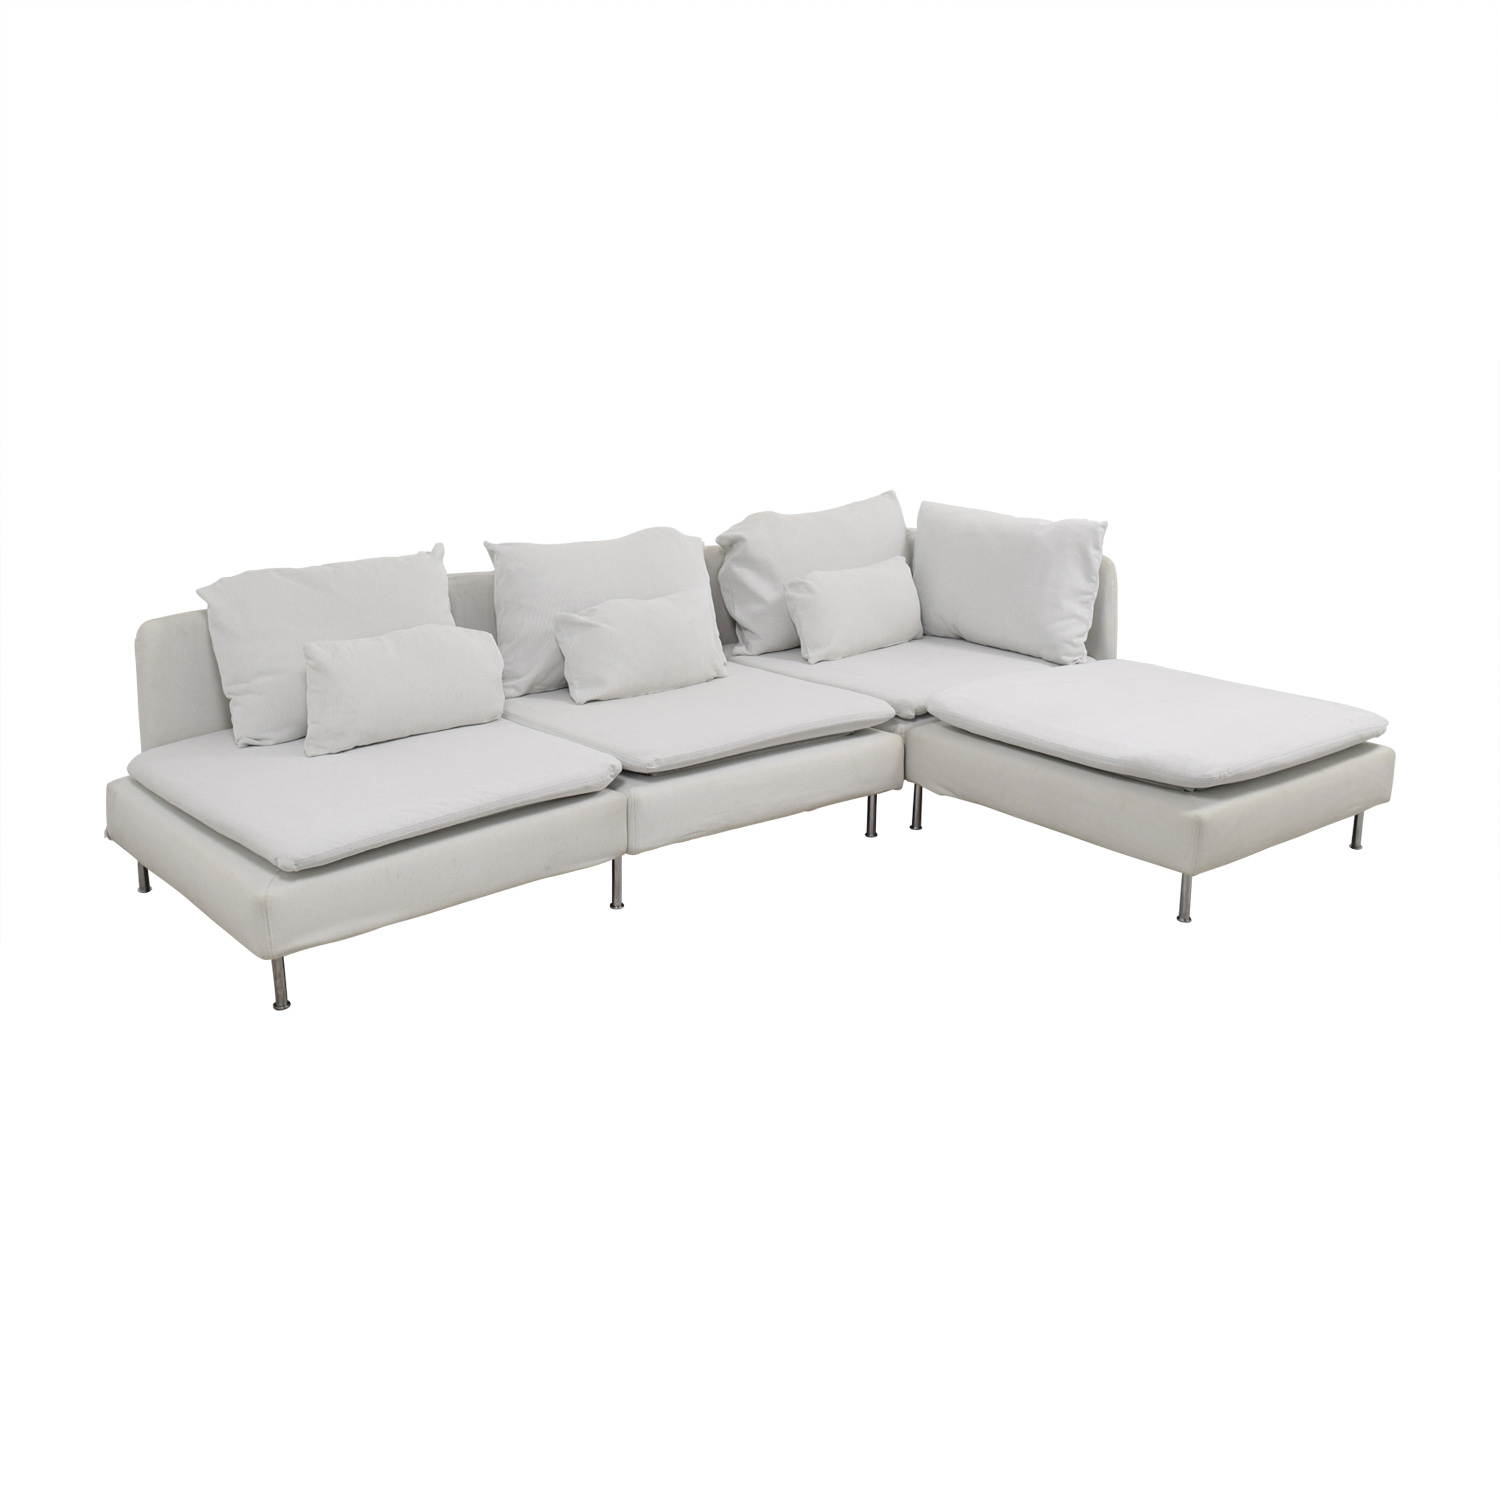 wh home sofa sectional enl white futon product city